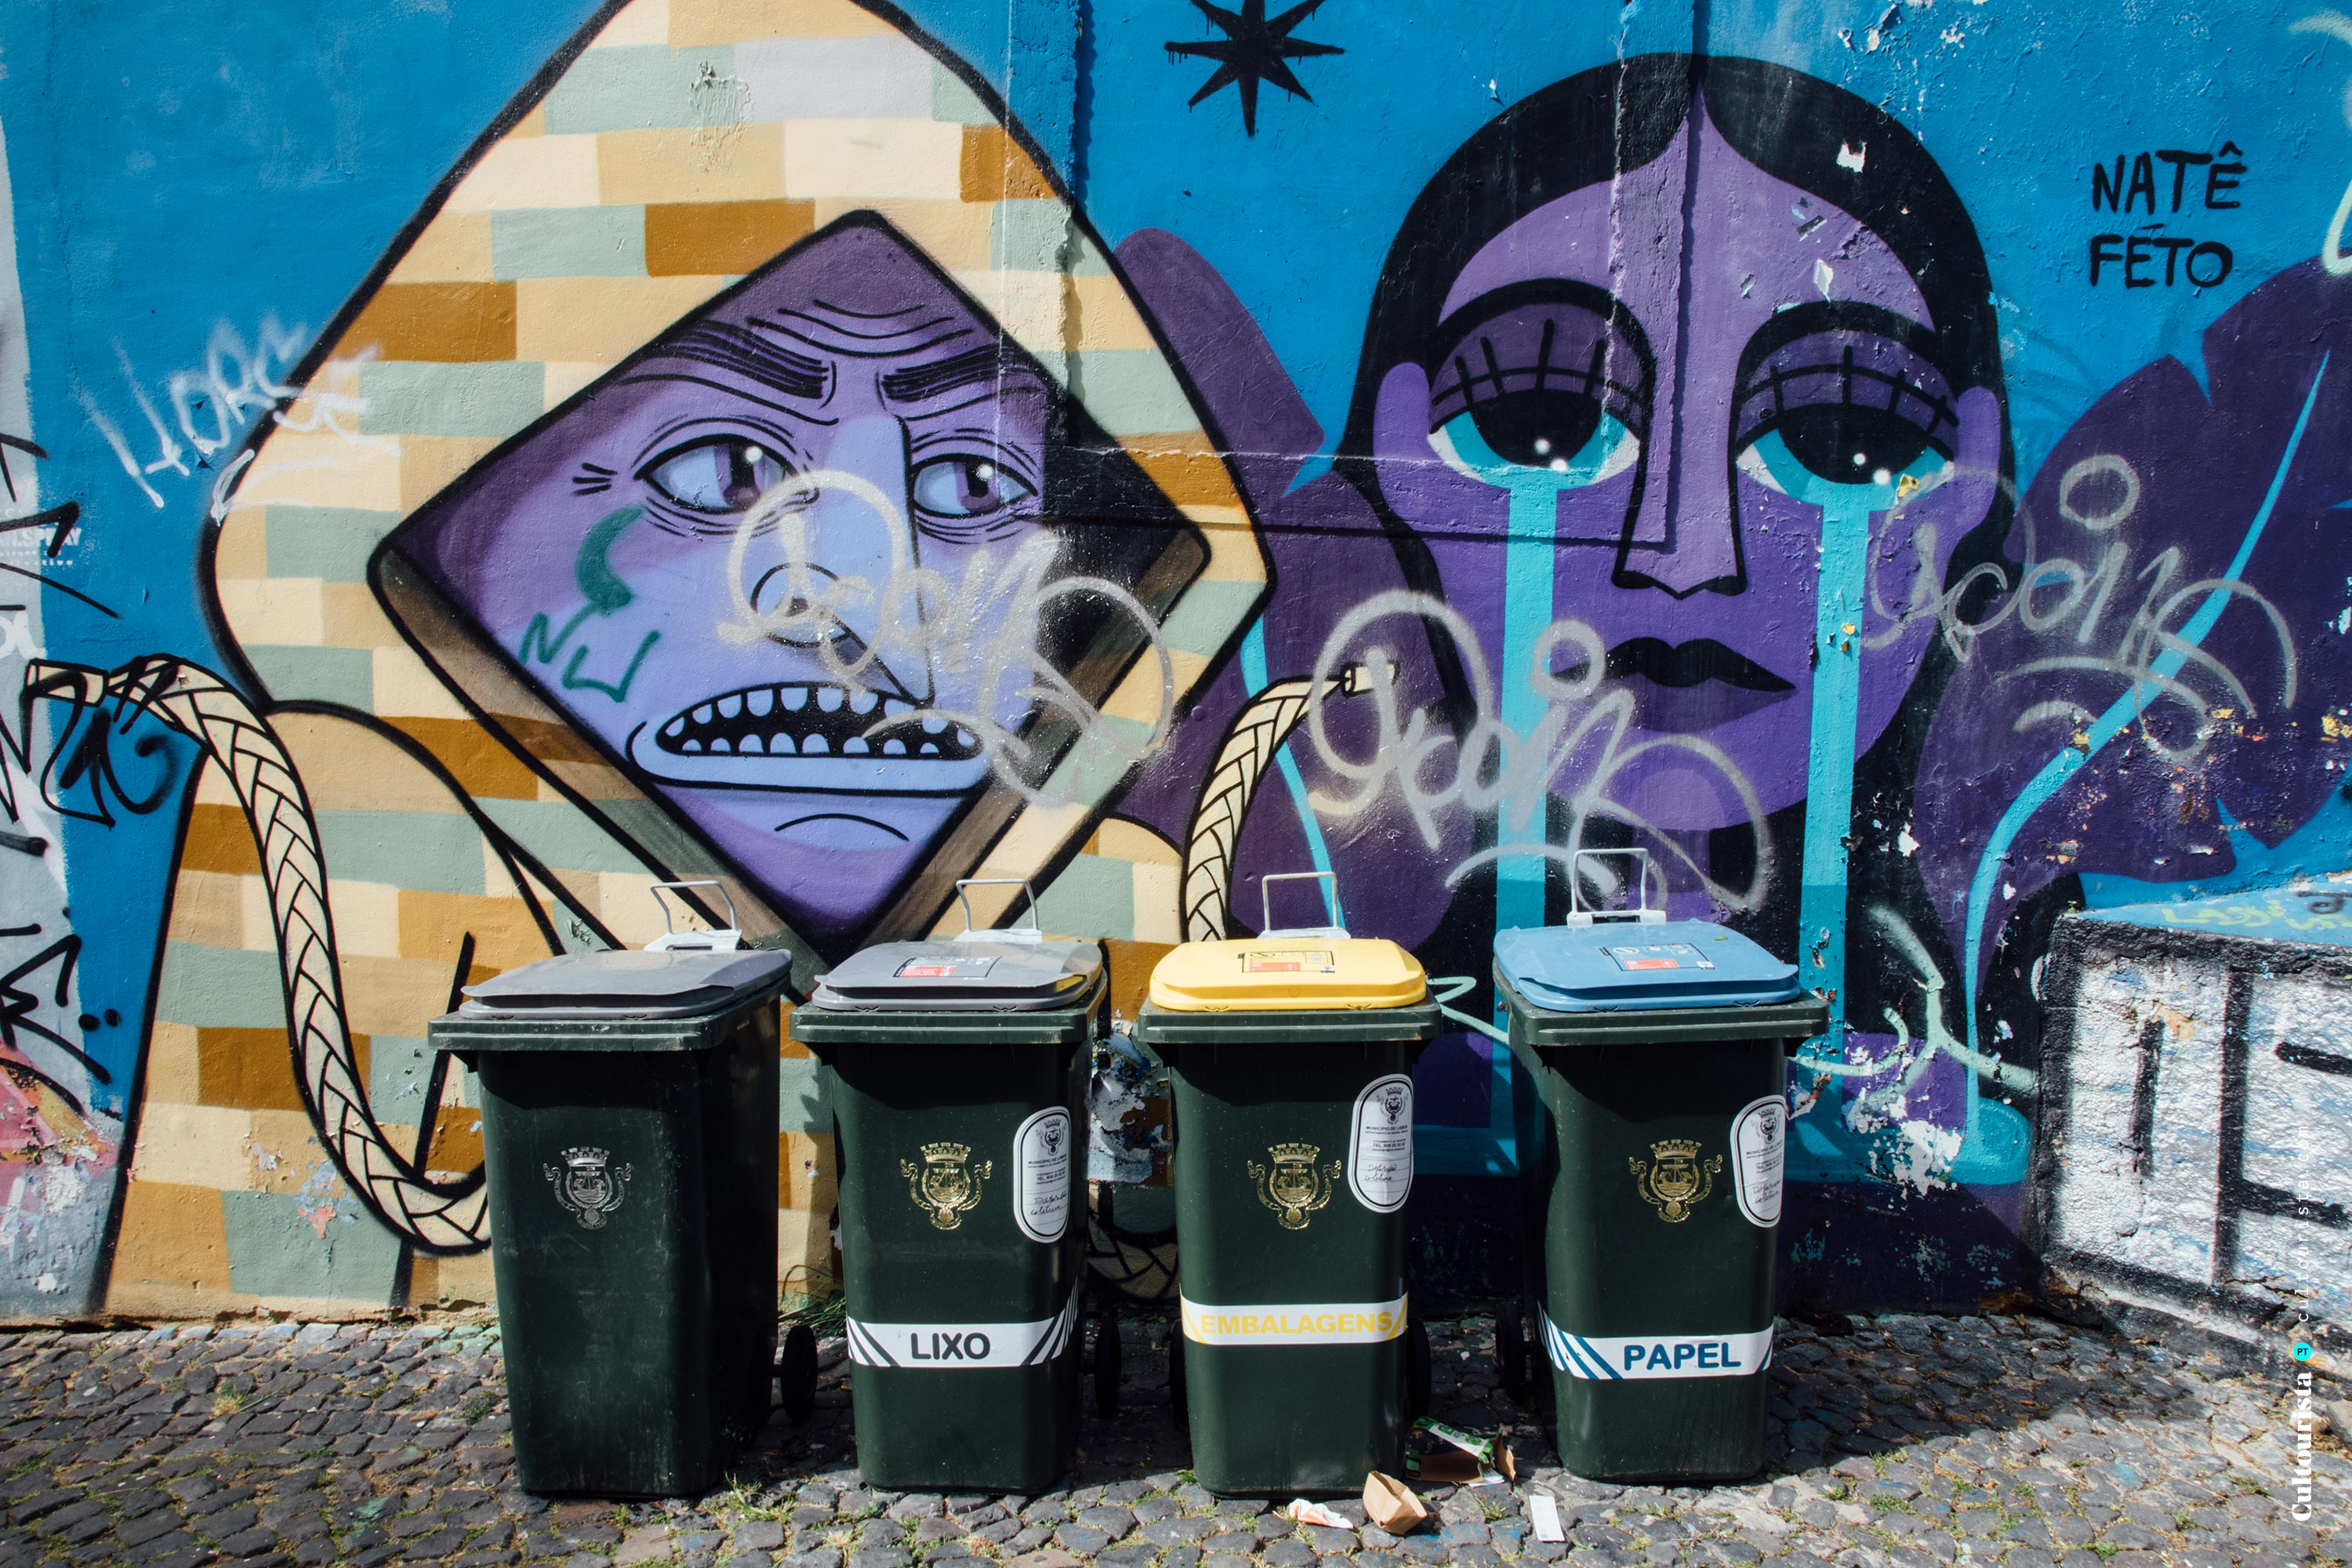 Bins and graffitis by the viewpoint Graça